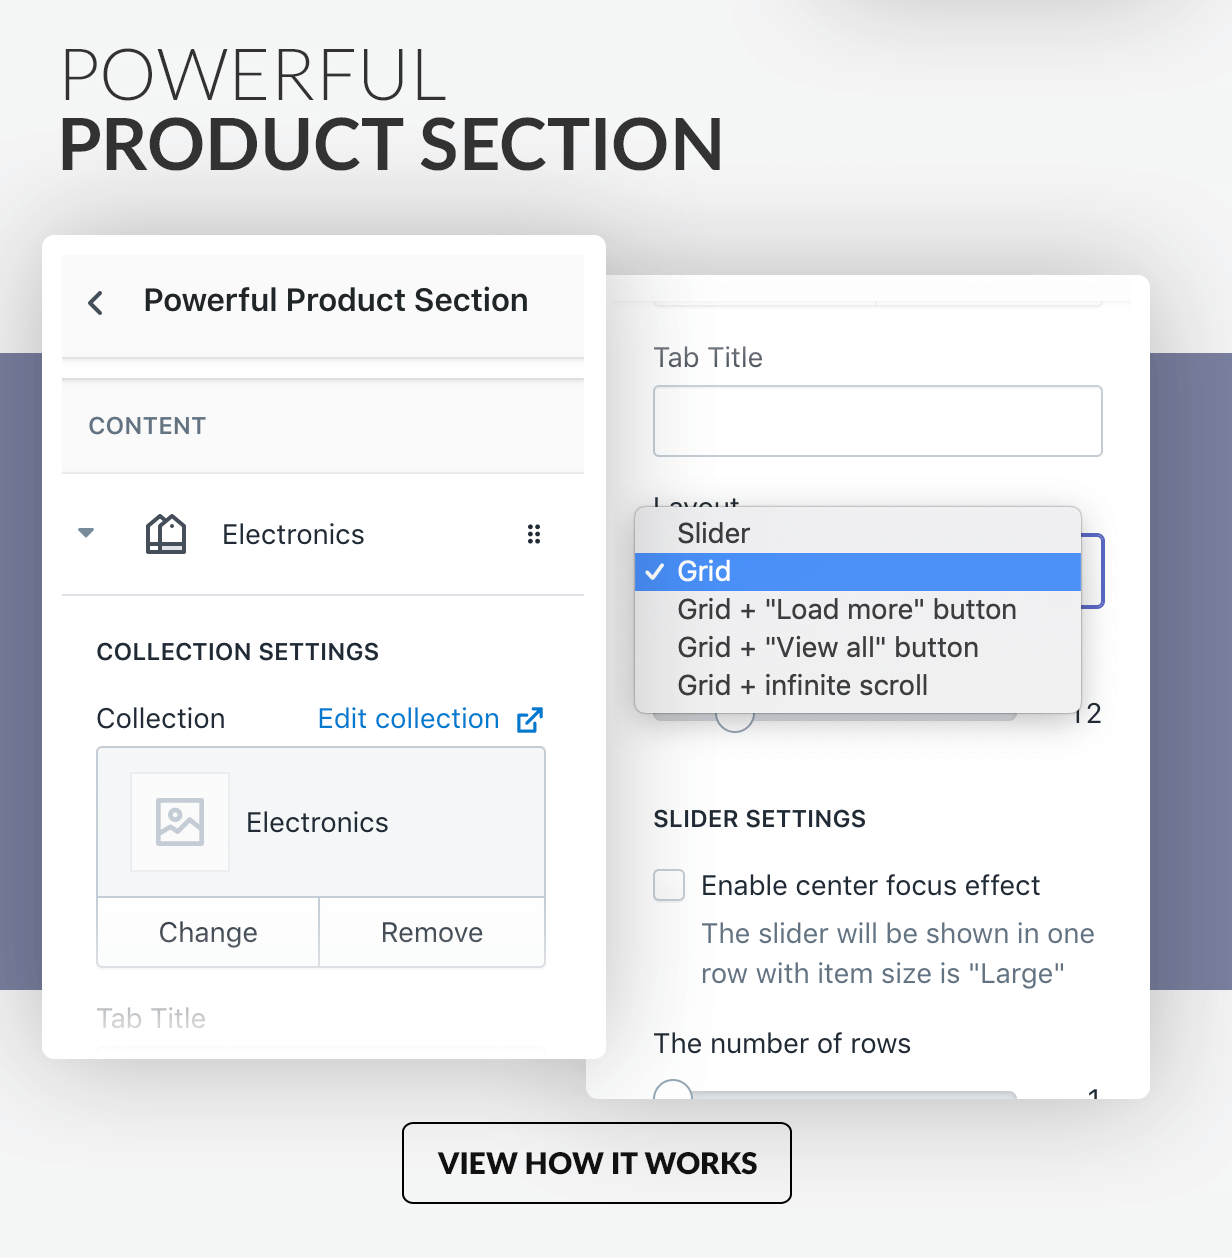 Powerful product section